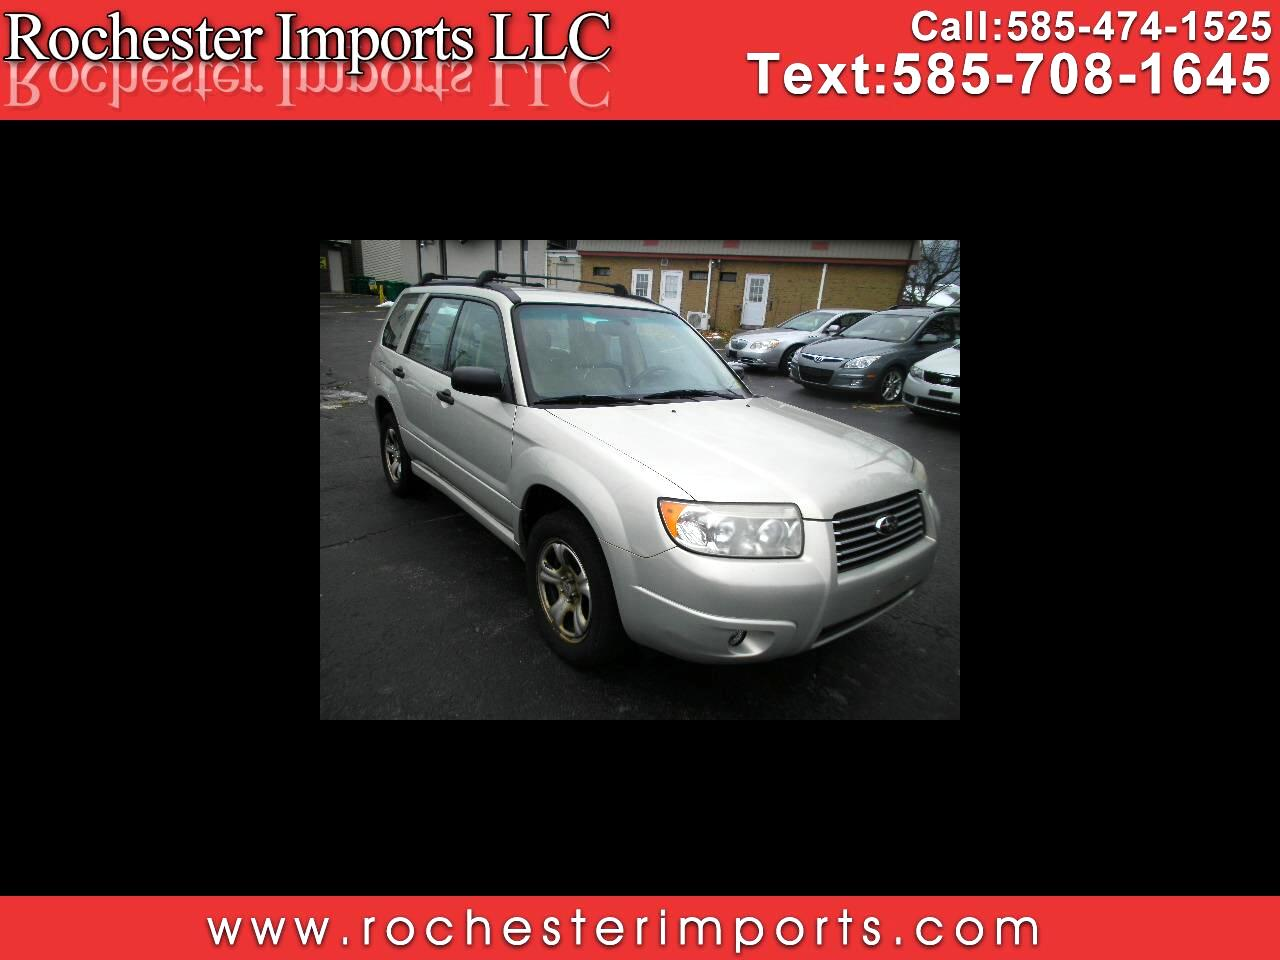 2007 Subaru Forester AWD 4dr H4 AT X